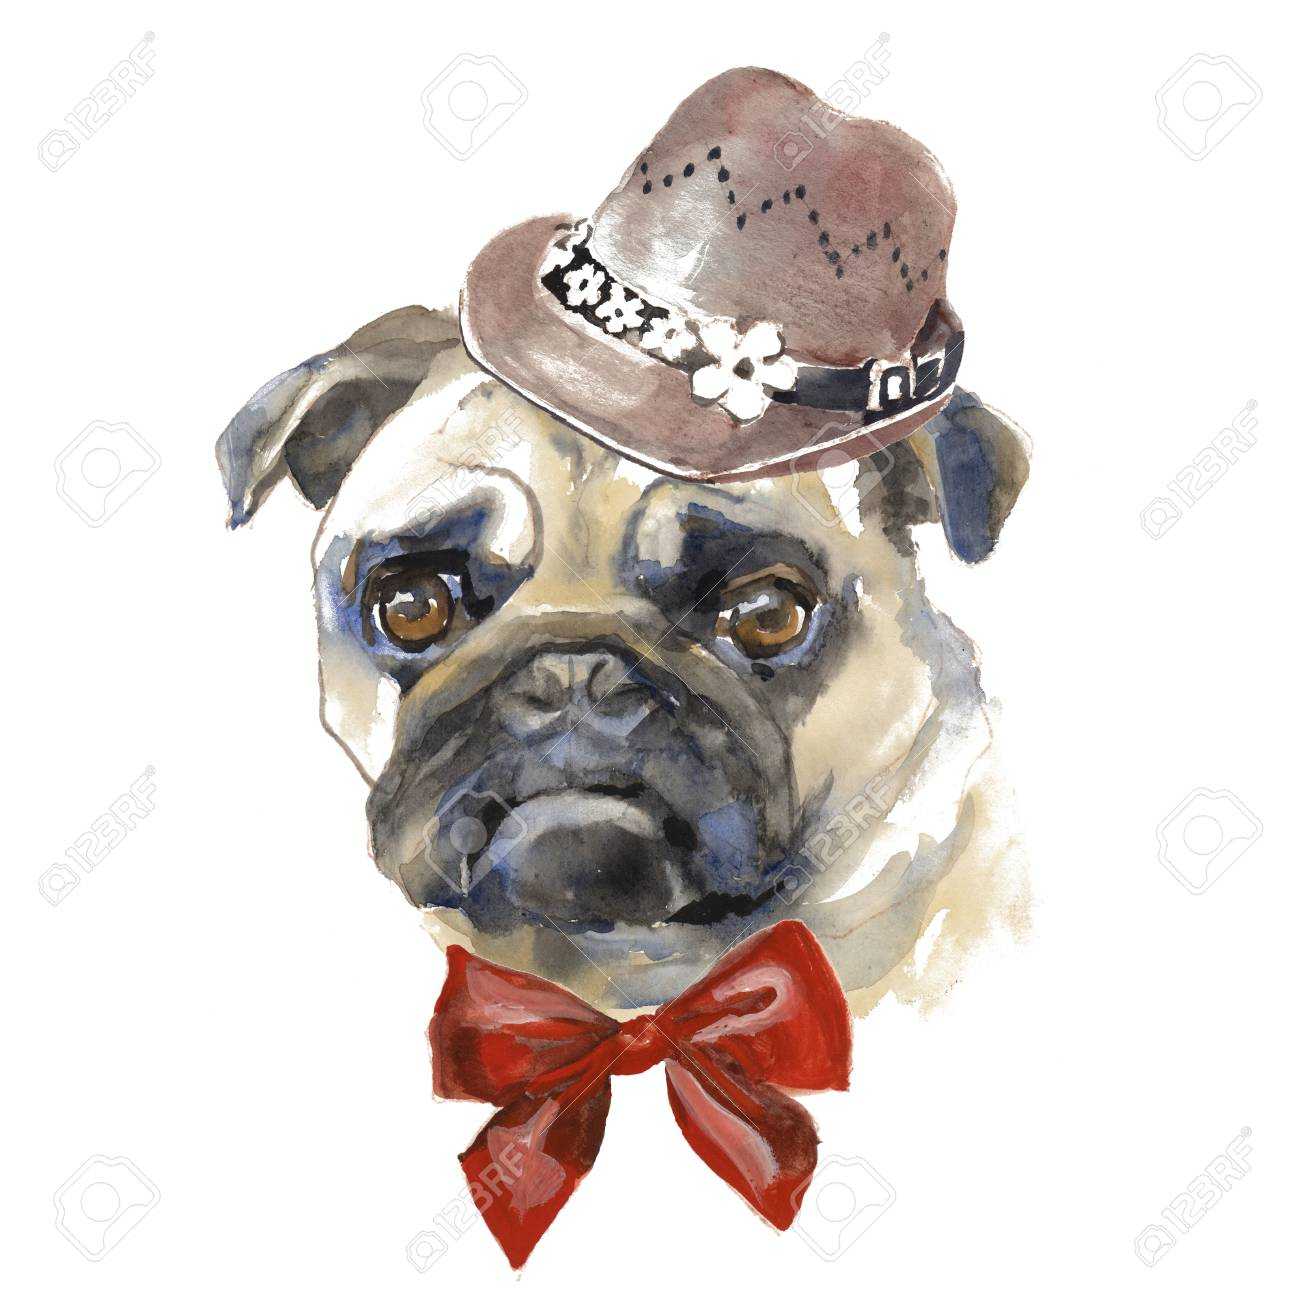 89d63aaabc74 Stock Photo - The Pug dog - hand painted, isolated on white background  watercolor fashion cute dogs portrait